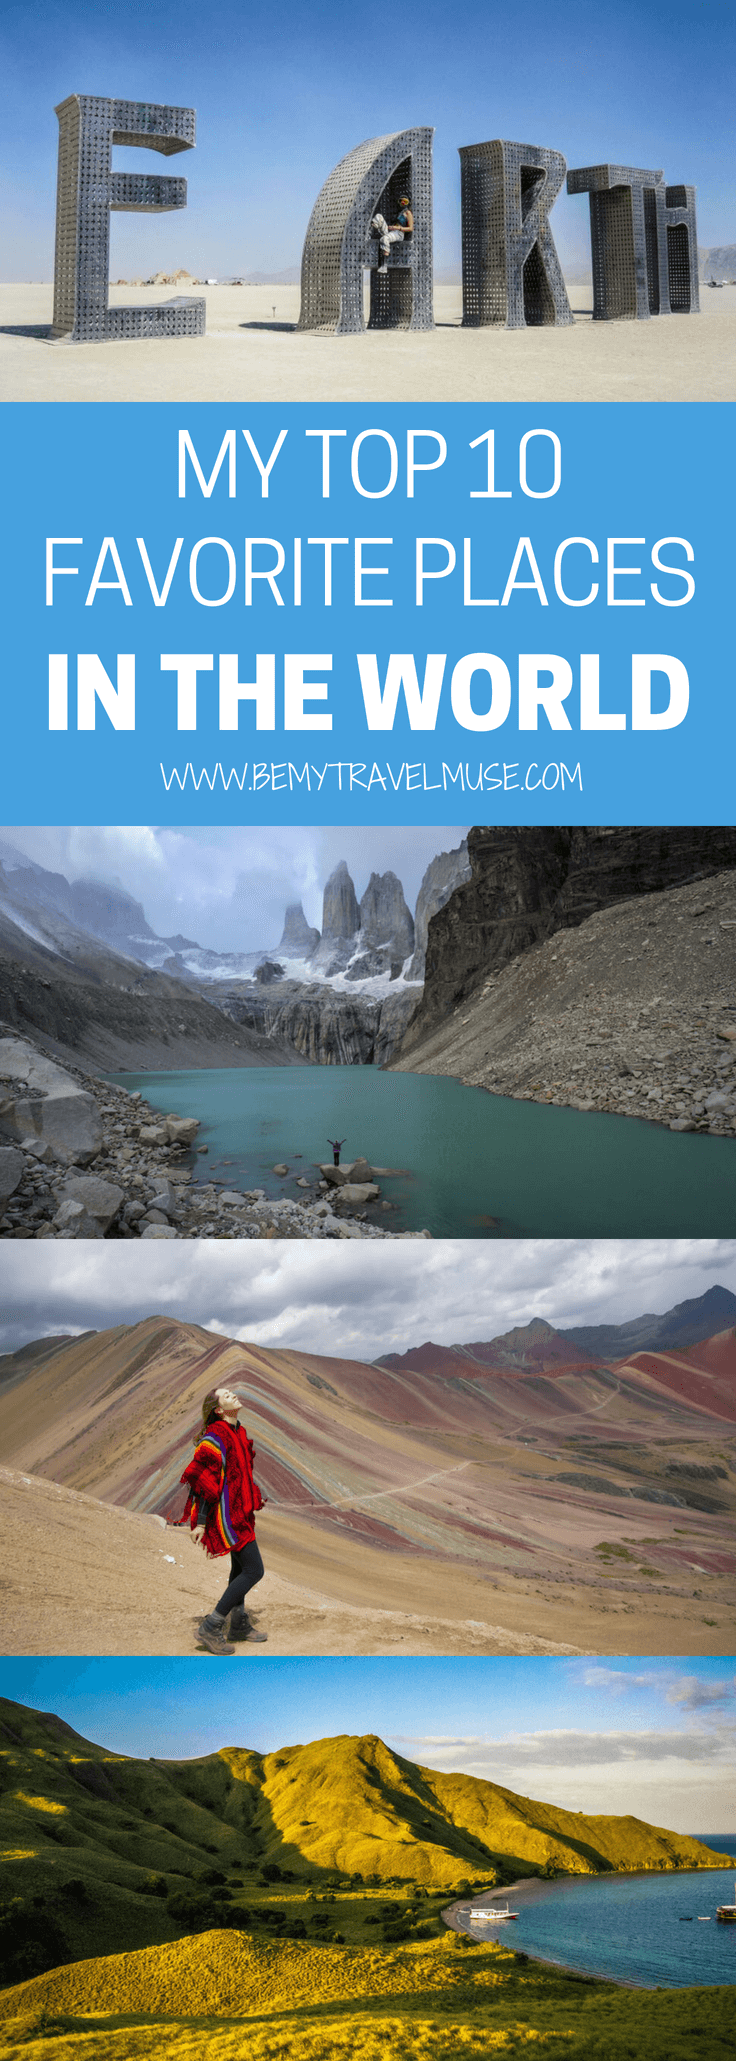 Looking for epic places to go for your next adventure? After traveling around the world for close to 6 years, here are my top favorite places in the world. Some were off the beaten path, some were amazing hikes that I will remember forever, and some, I almost want to keep it to myself! #bucketlisttravel